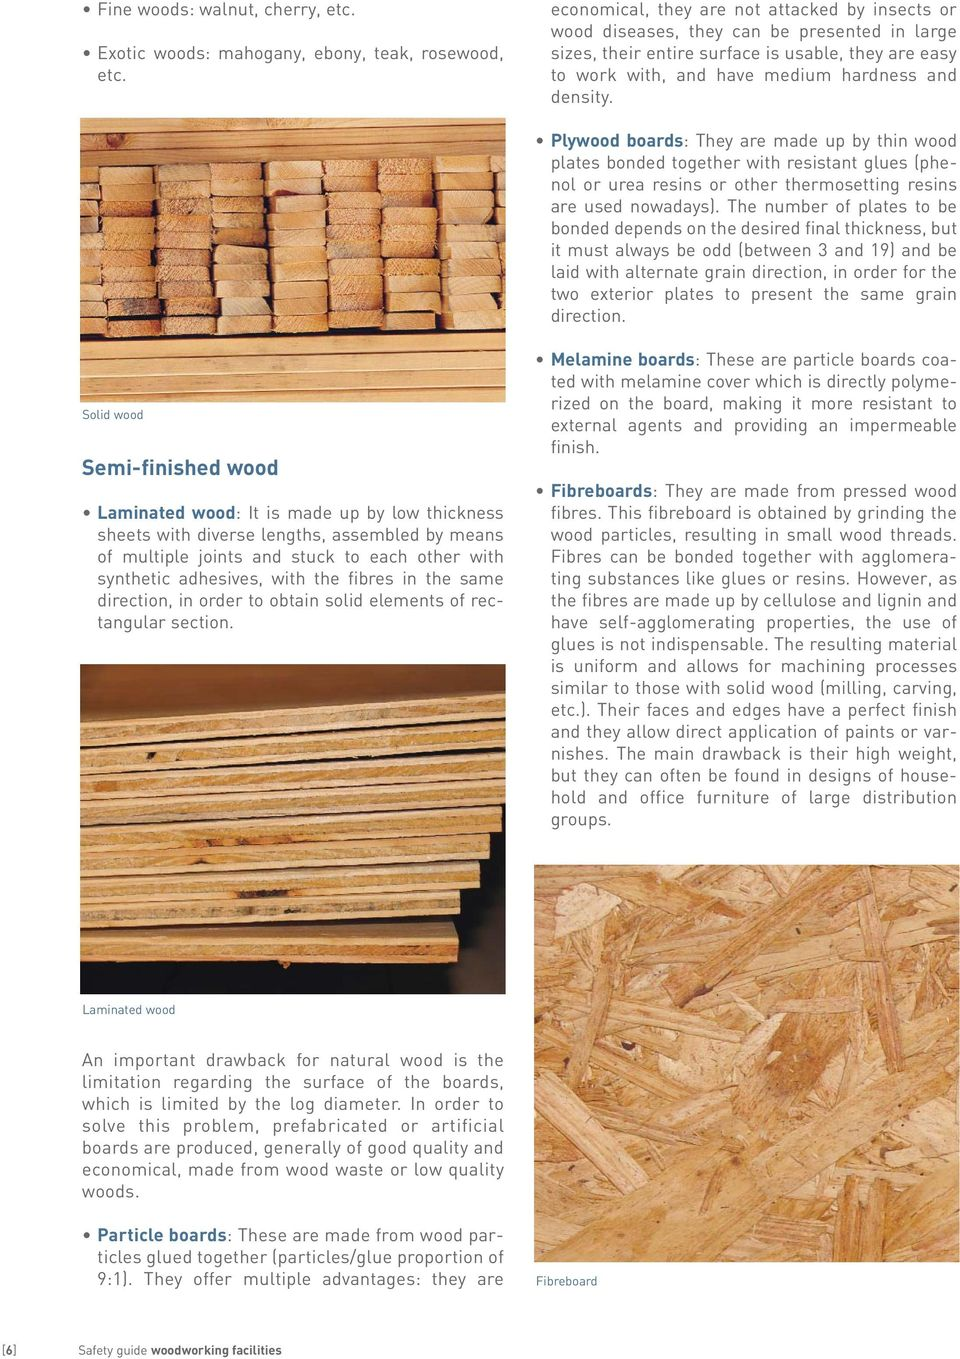 Plywood boards: They are made up by thin wood plates bonded together with resistant glues (phenol or urea resins or other thermosetting resins are used nowadays).